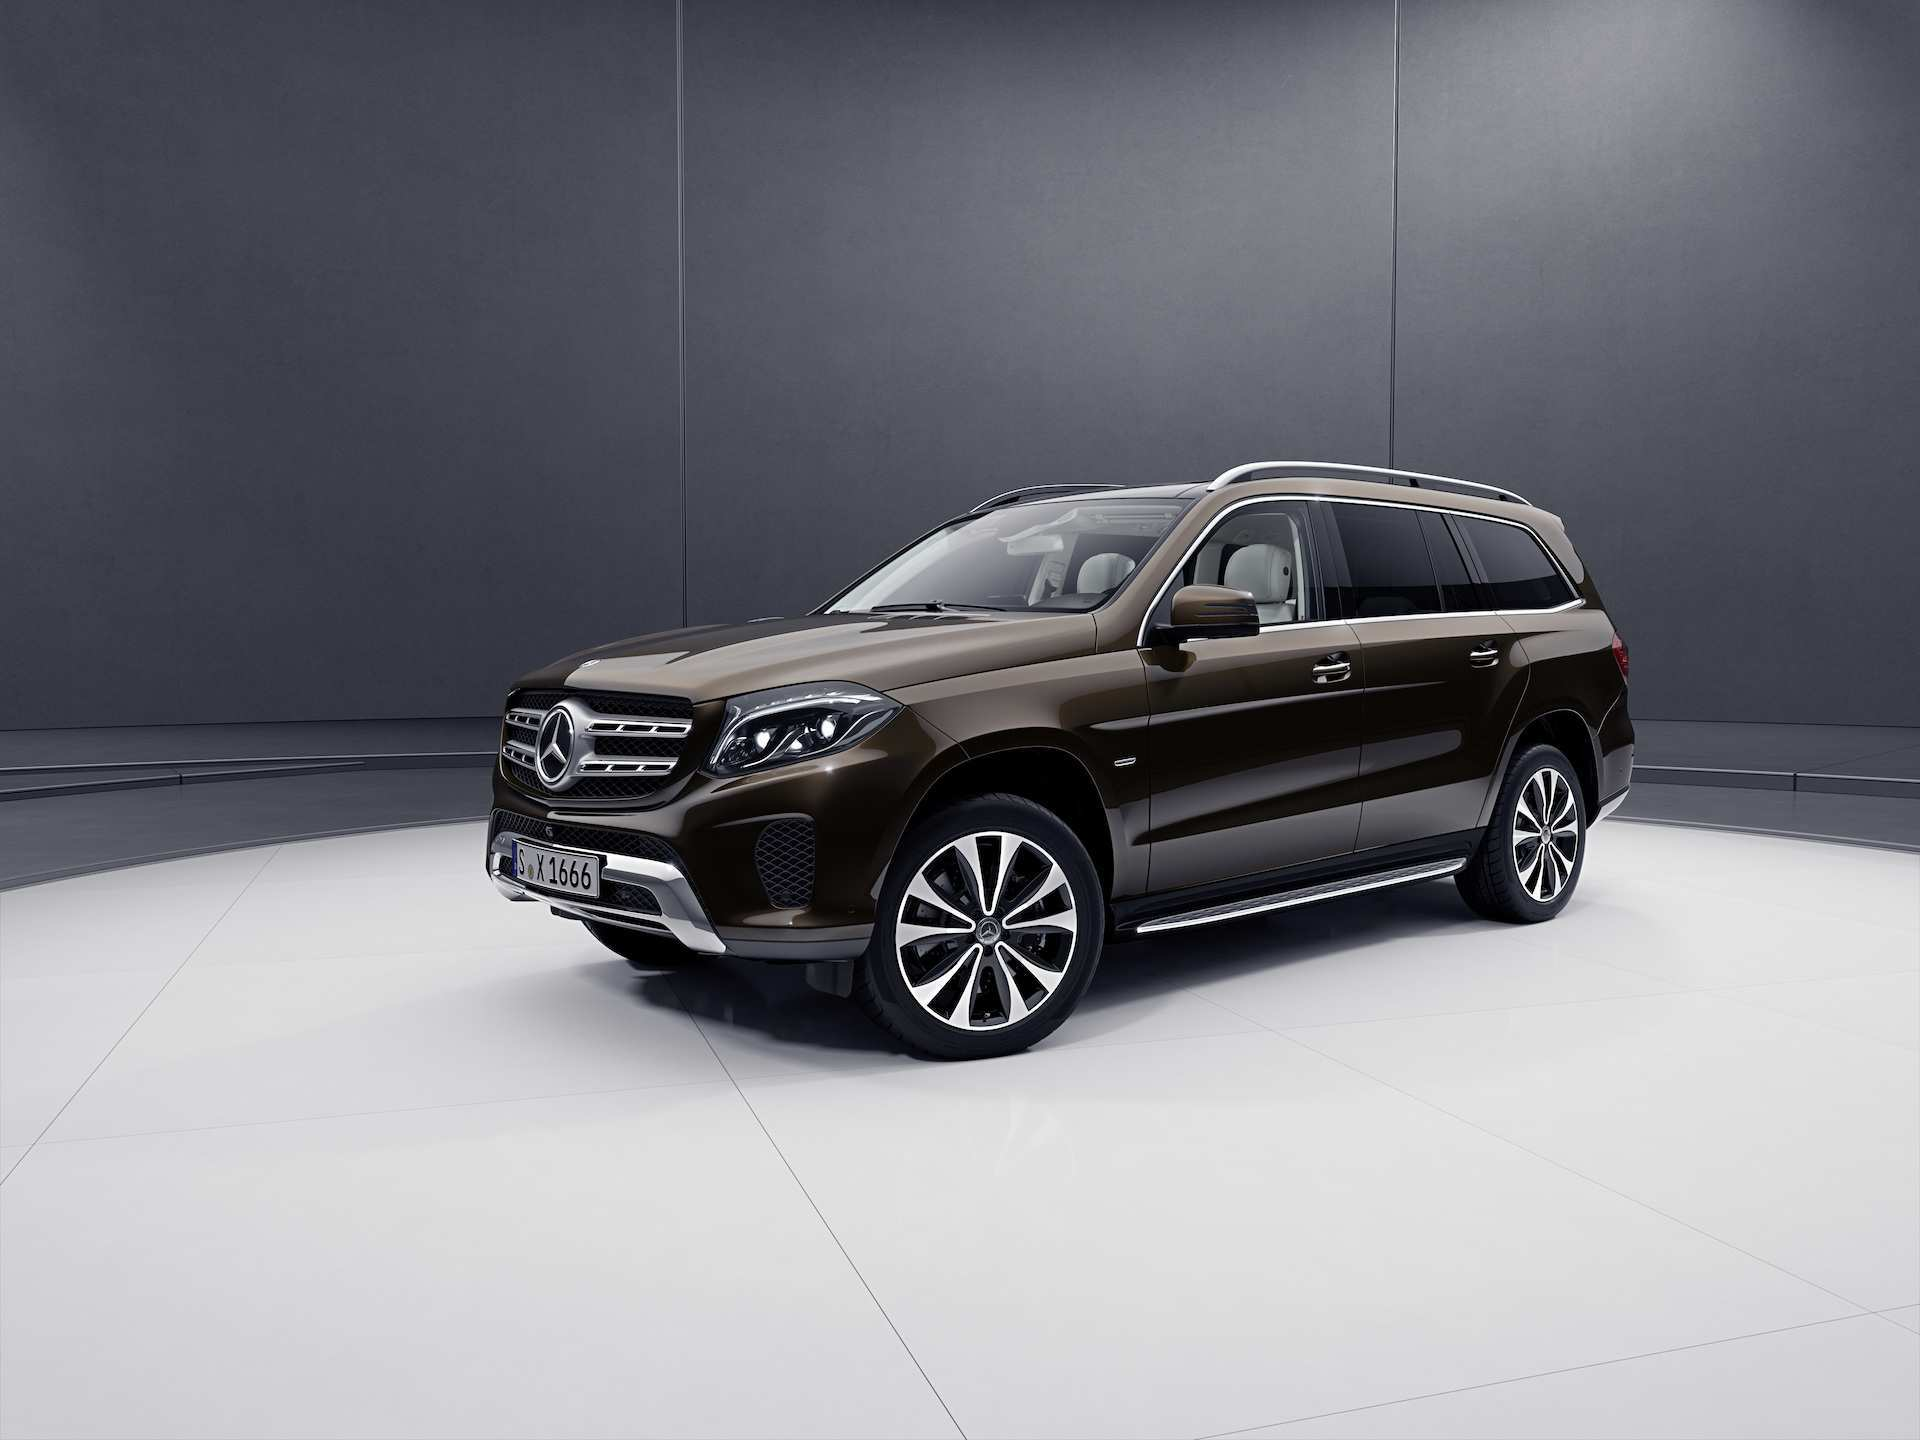 17 Great Mercedes 2019 Gls Images by Mercedes 2019 Gls